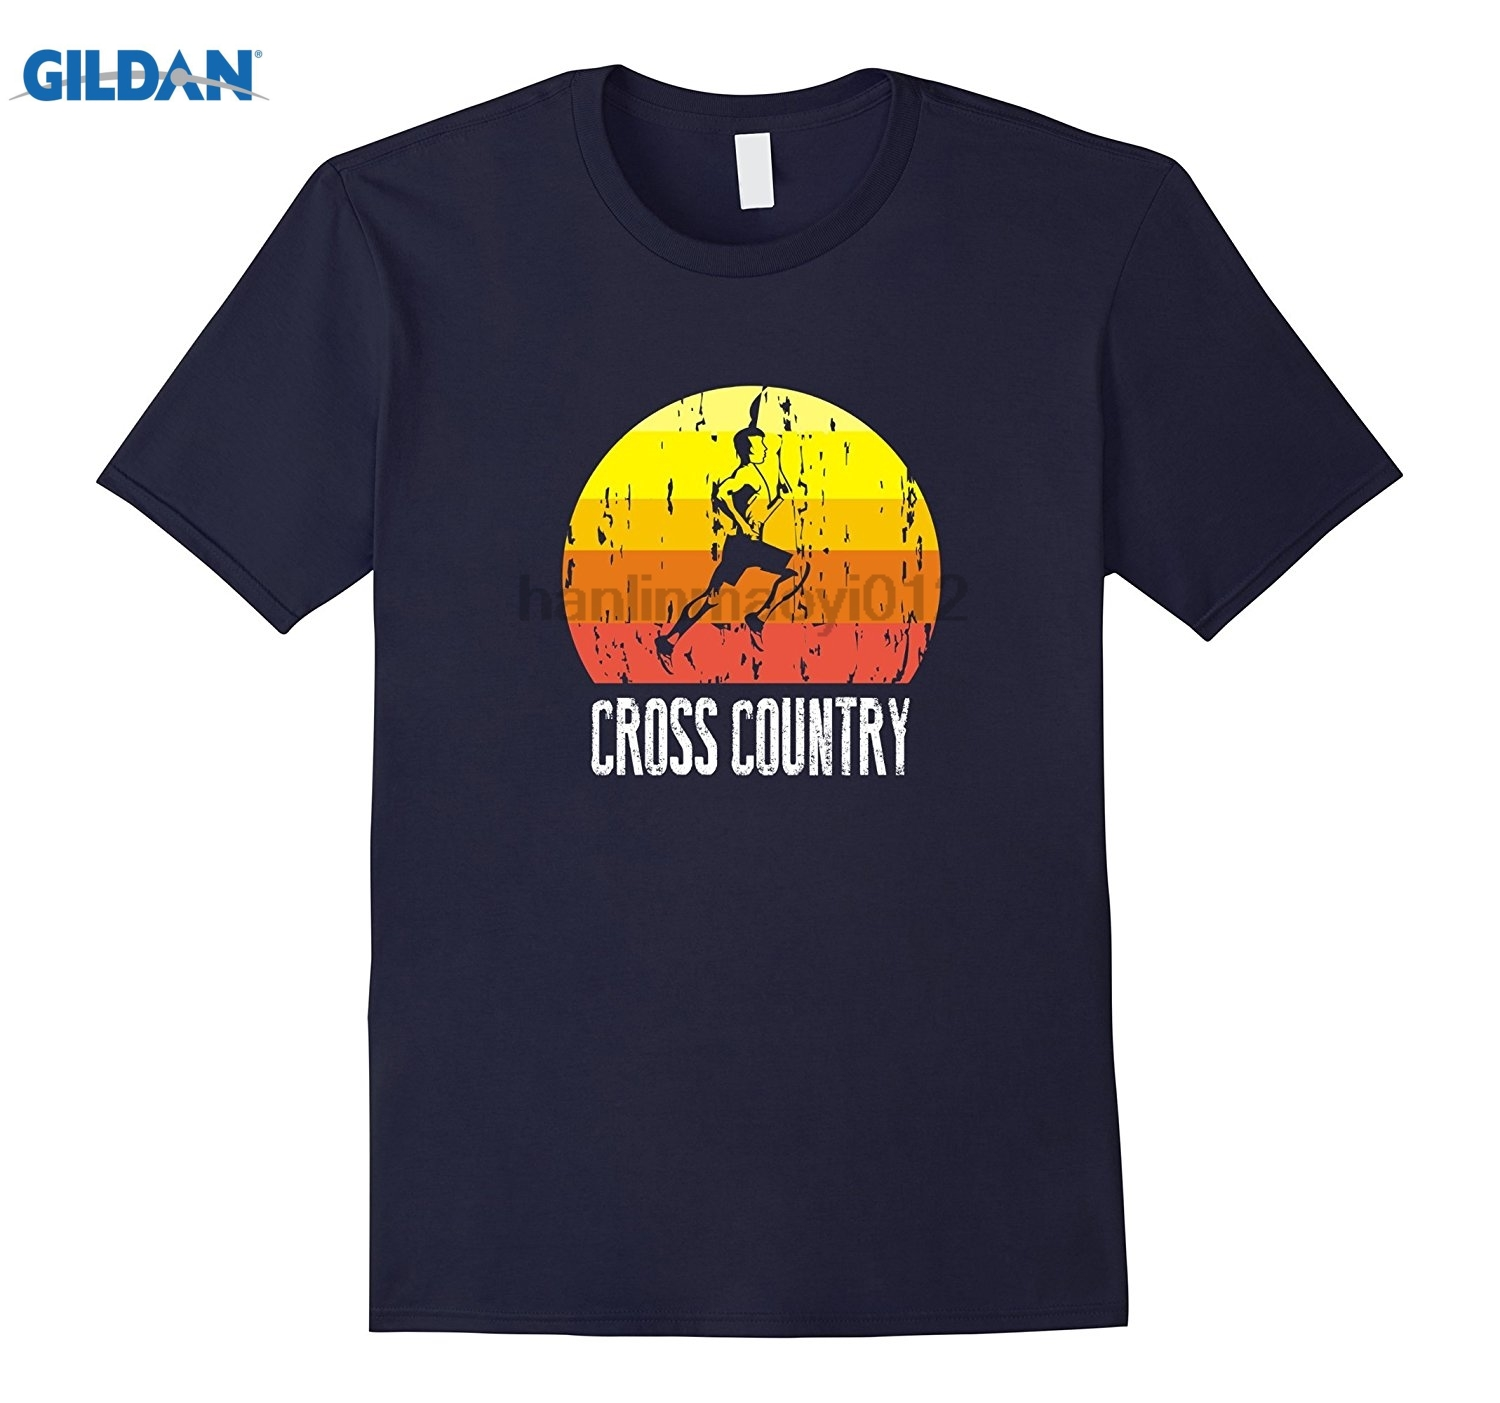 GILDAN Retro Distressed Cross Country T-Shirt For Runners sunglasses women T-shirt